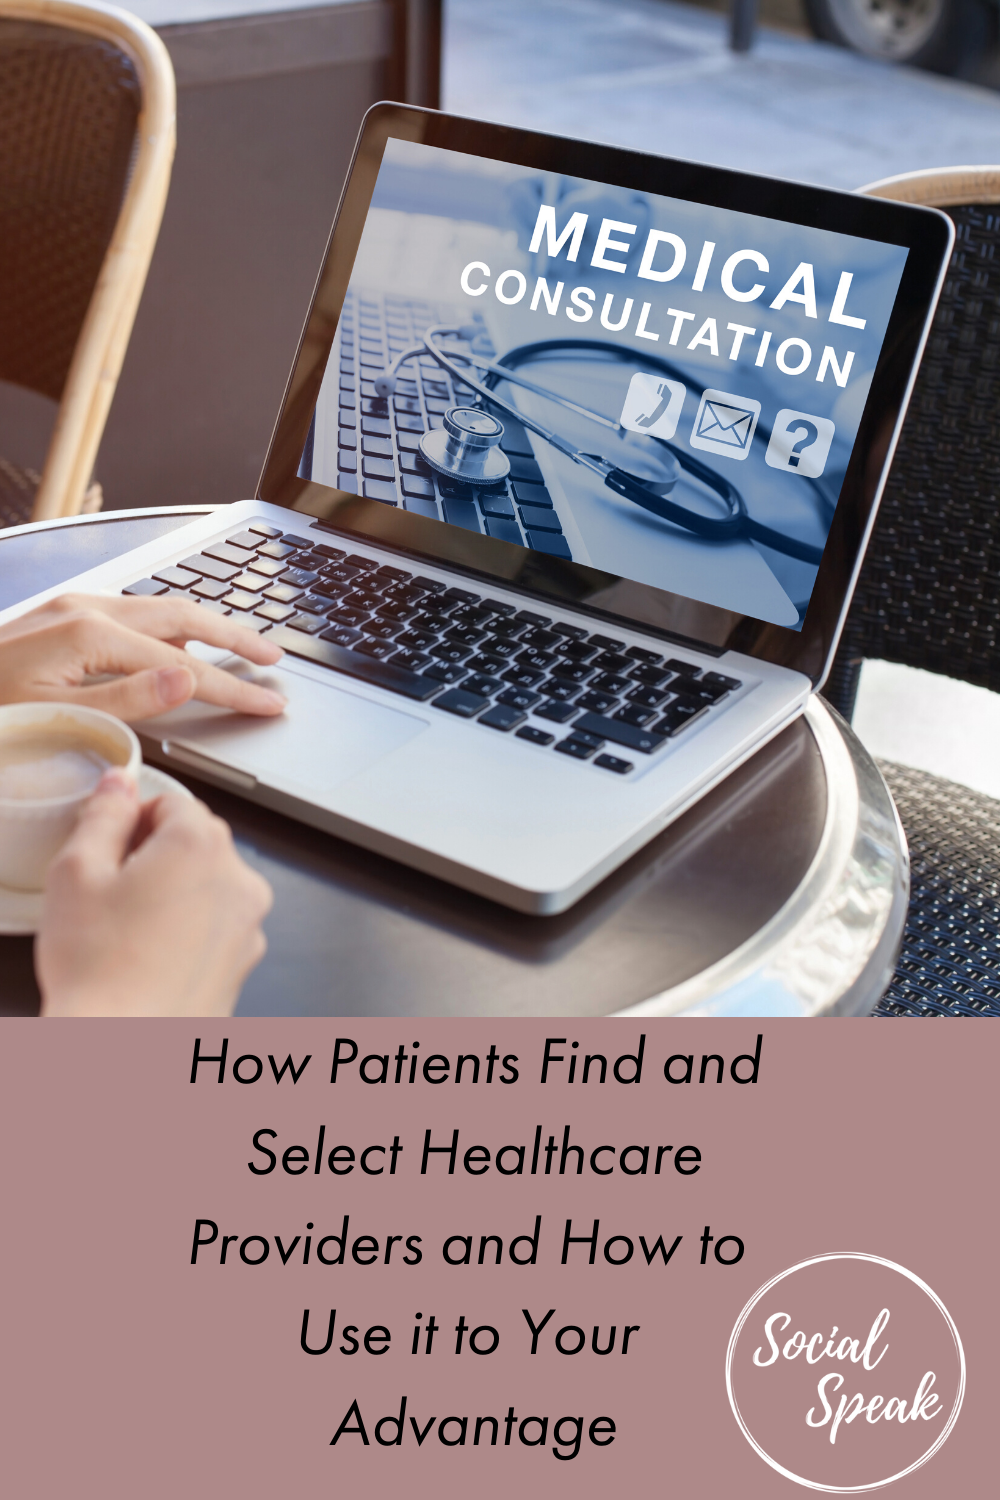 How Patients Find and Select Healthcare Providers and How to Use it to Your Advantage